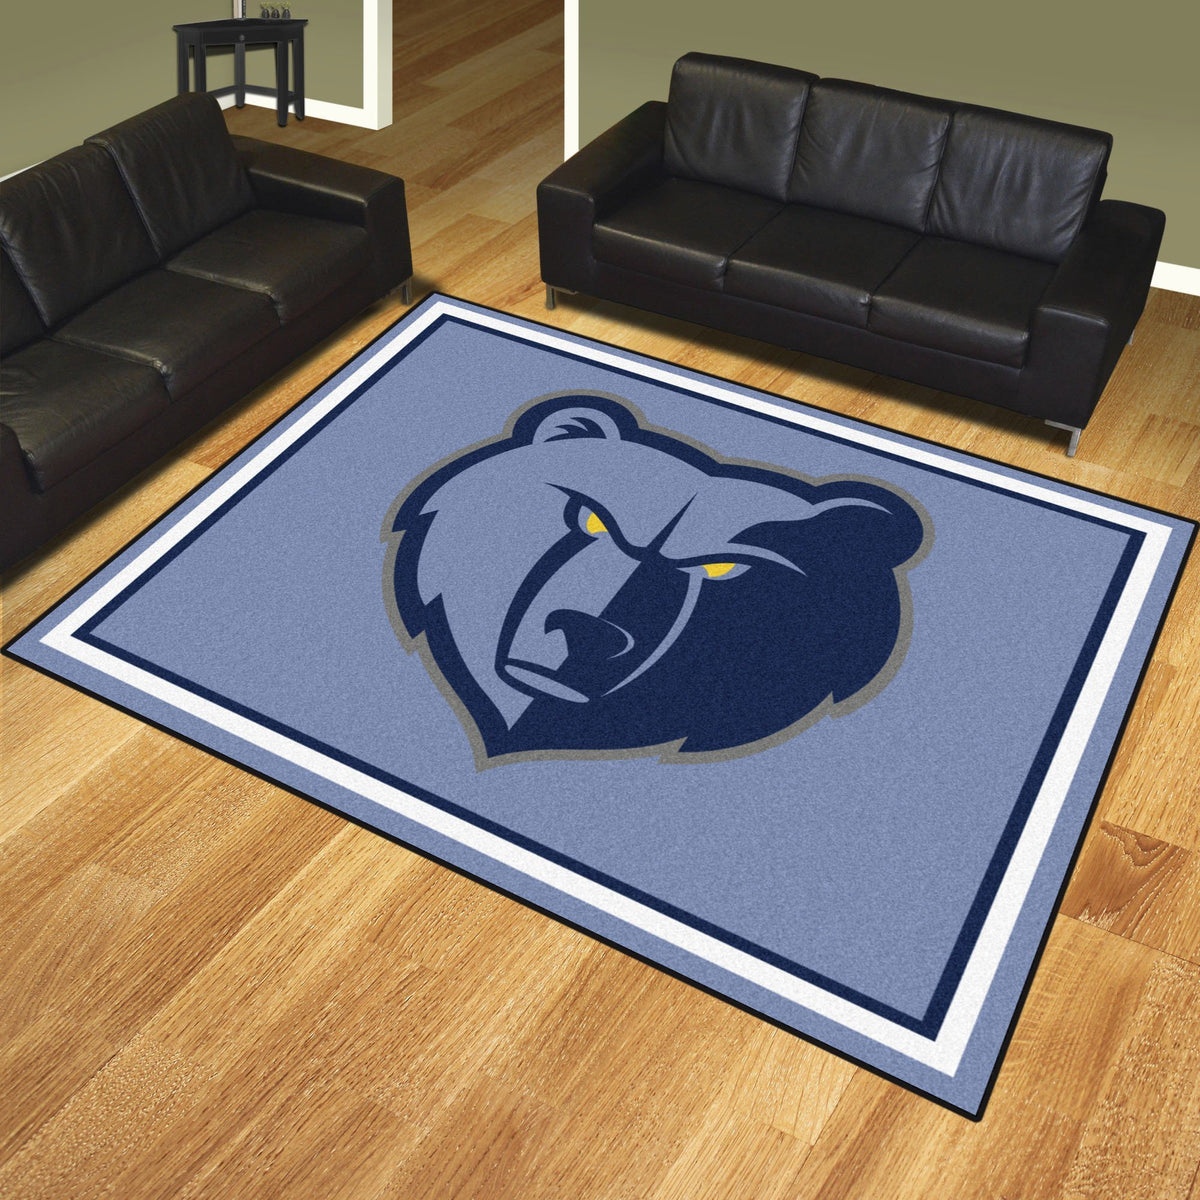 NBA - 8' x 10' Rug NBA Mats, Plush Rugs, 8x10 Rug, NBA, Home Fan Mats Memphis Grizzlies